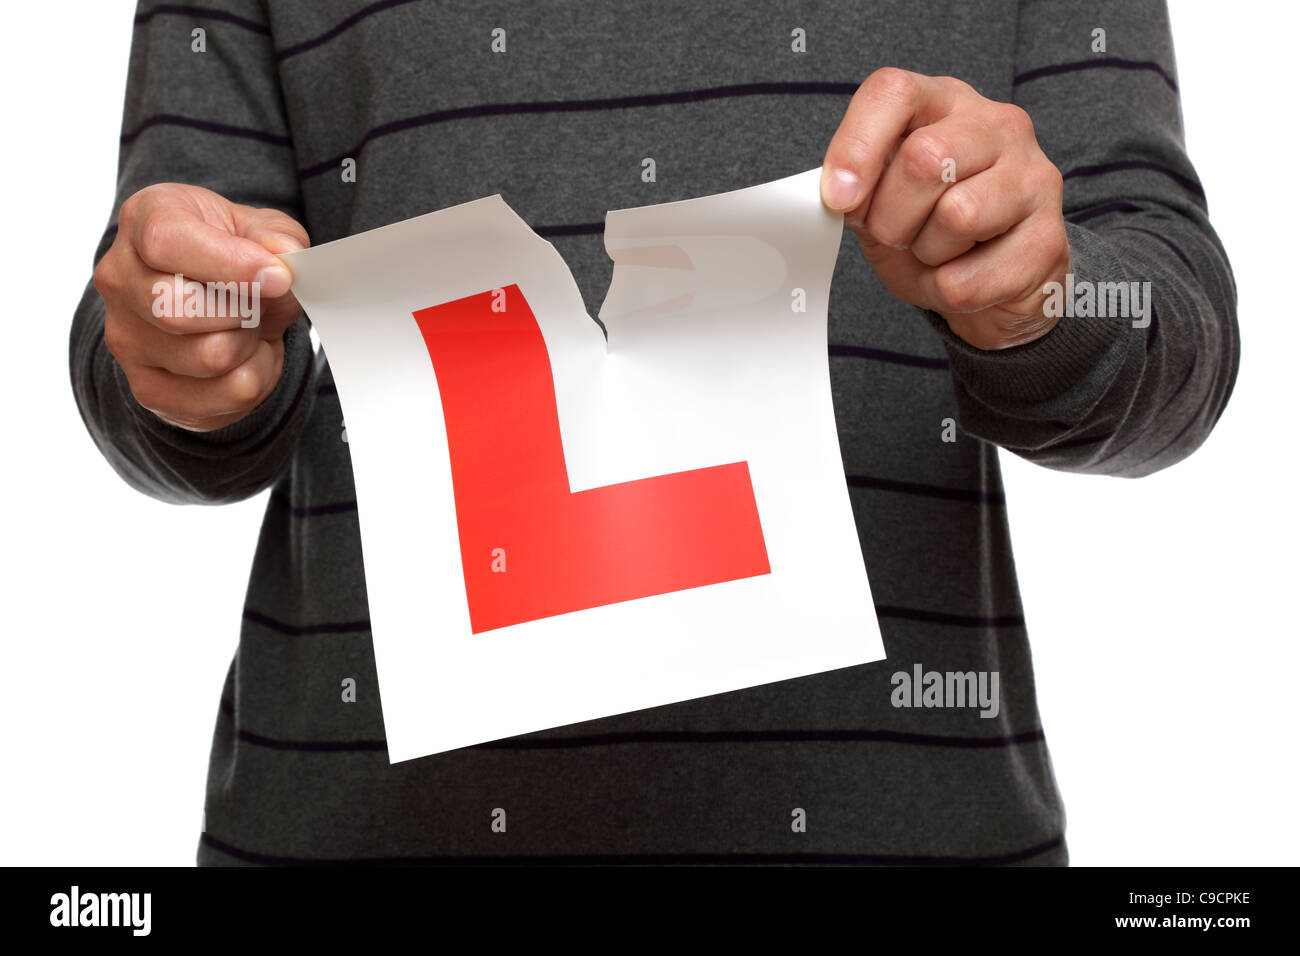 Tearing up L plate after passing driving test - Stock Image